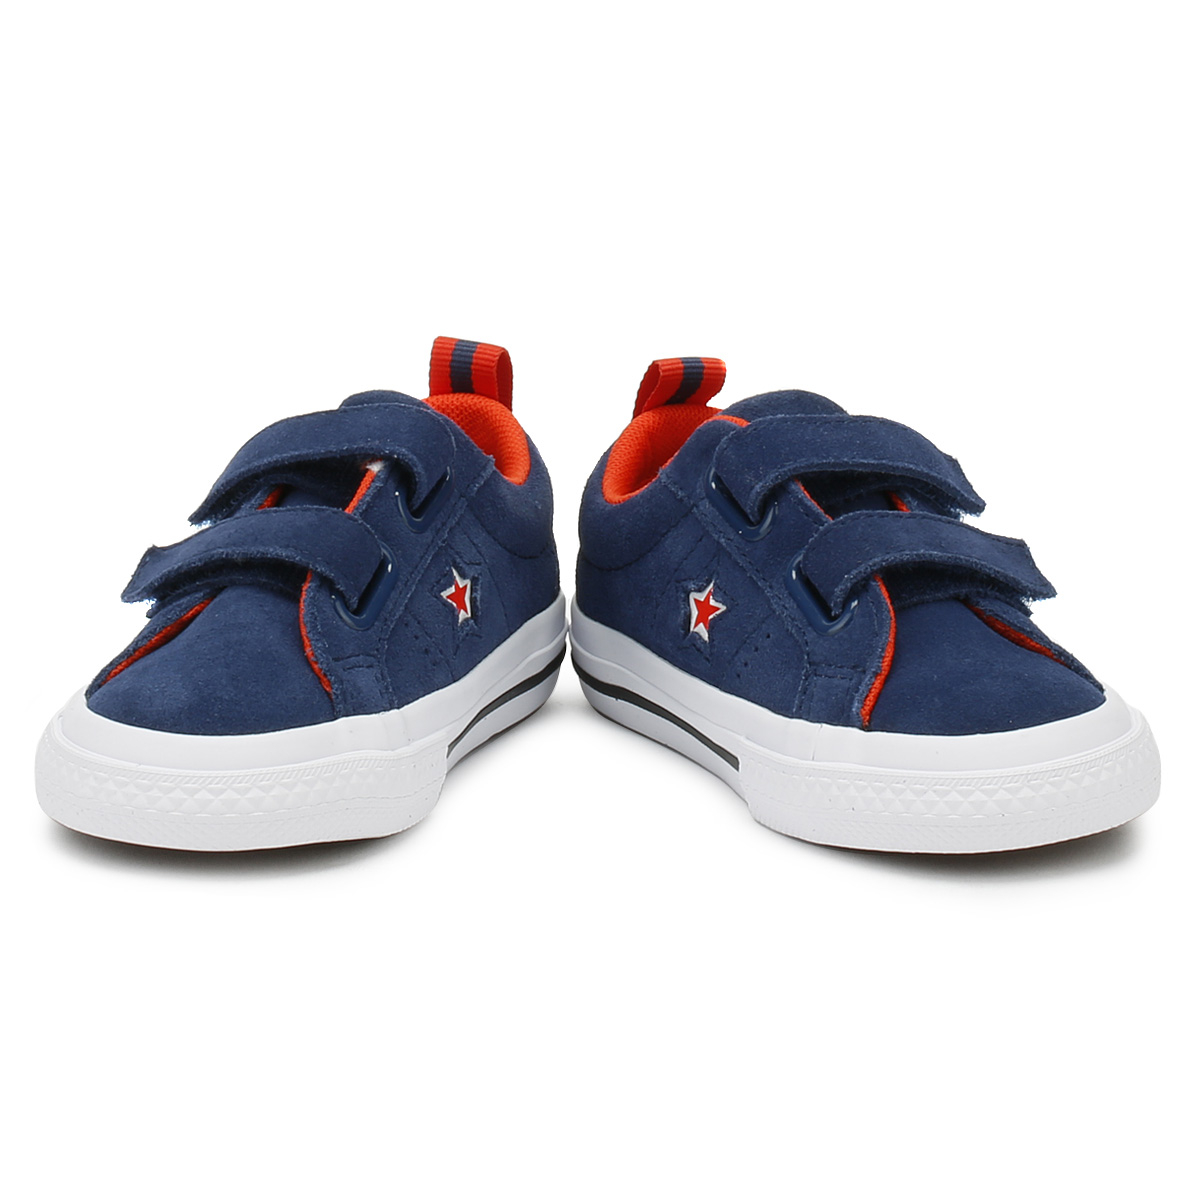 Converse-One-Star-Toddlers-Ox-Trainers-Navy-amp-White-Canvas-2V-Kids-Casual-Shoes